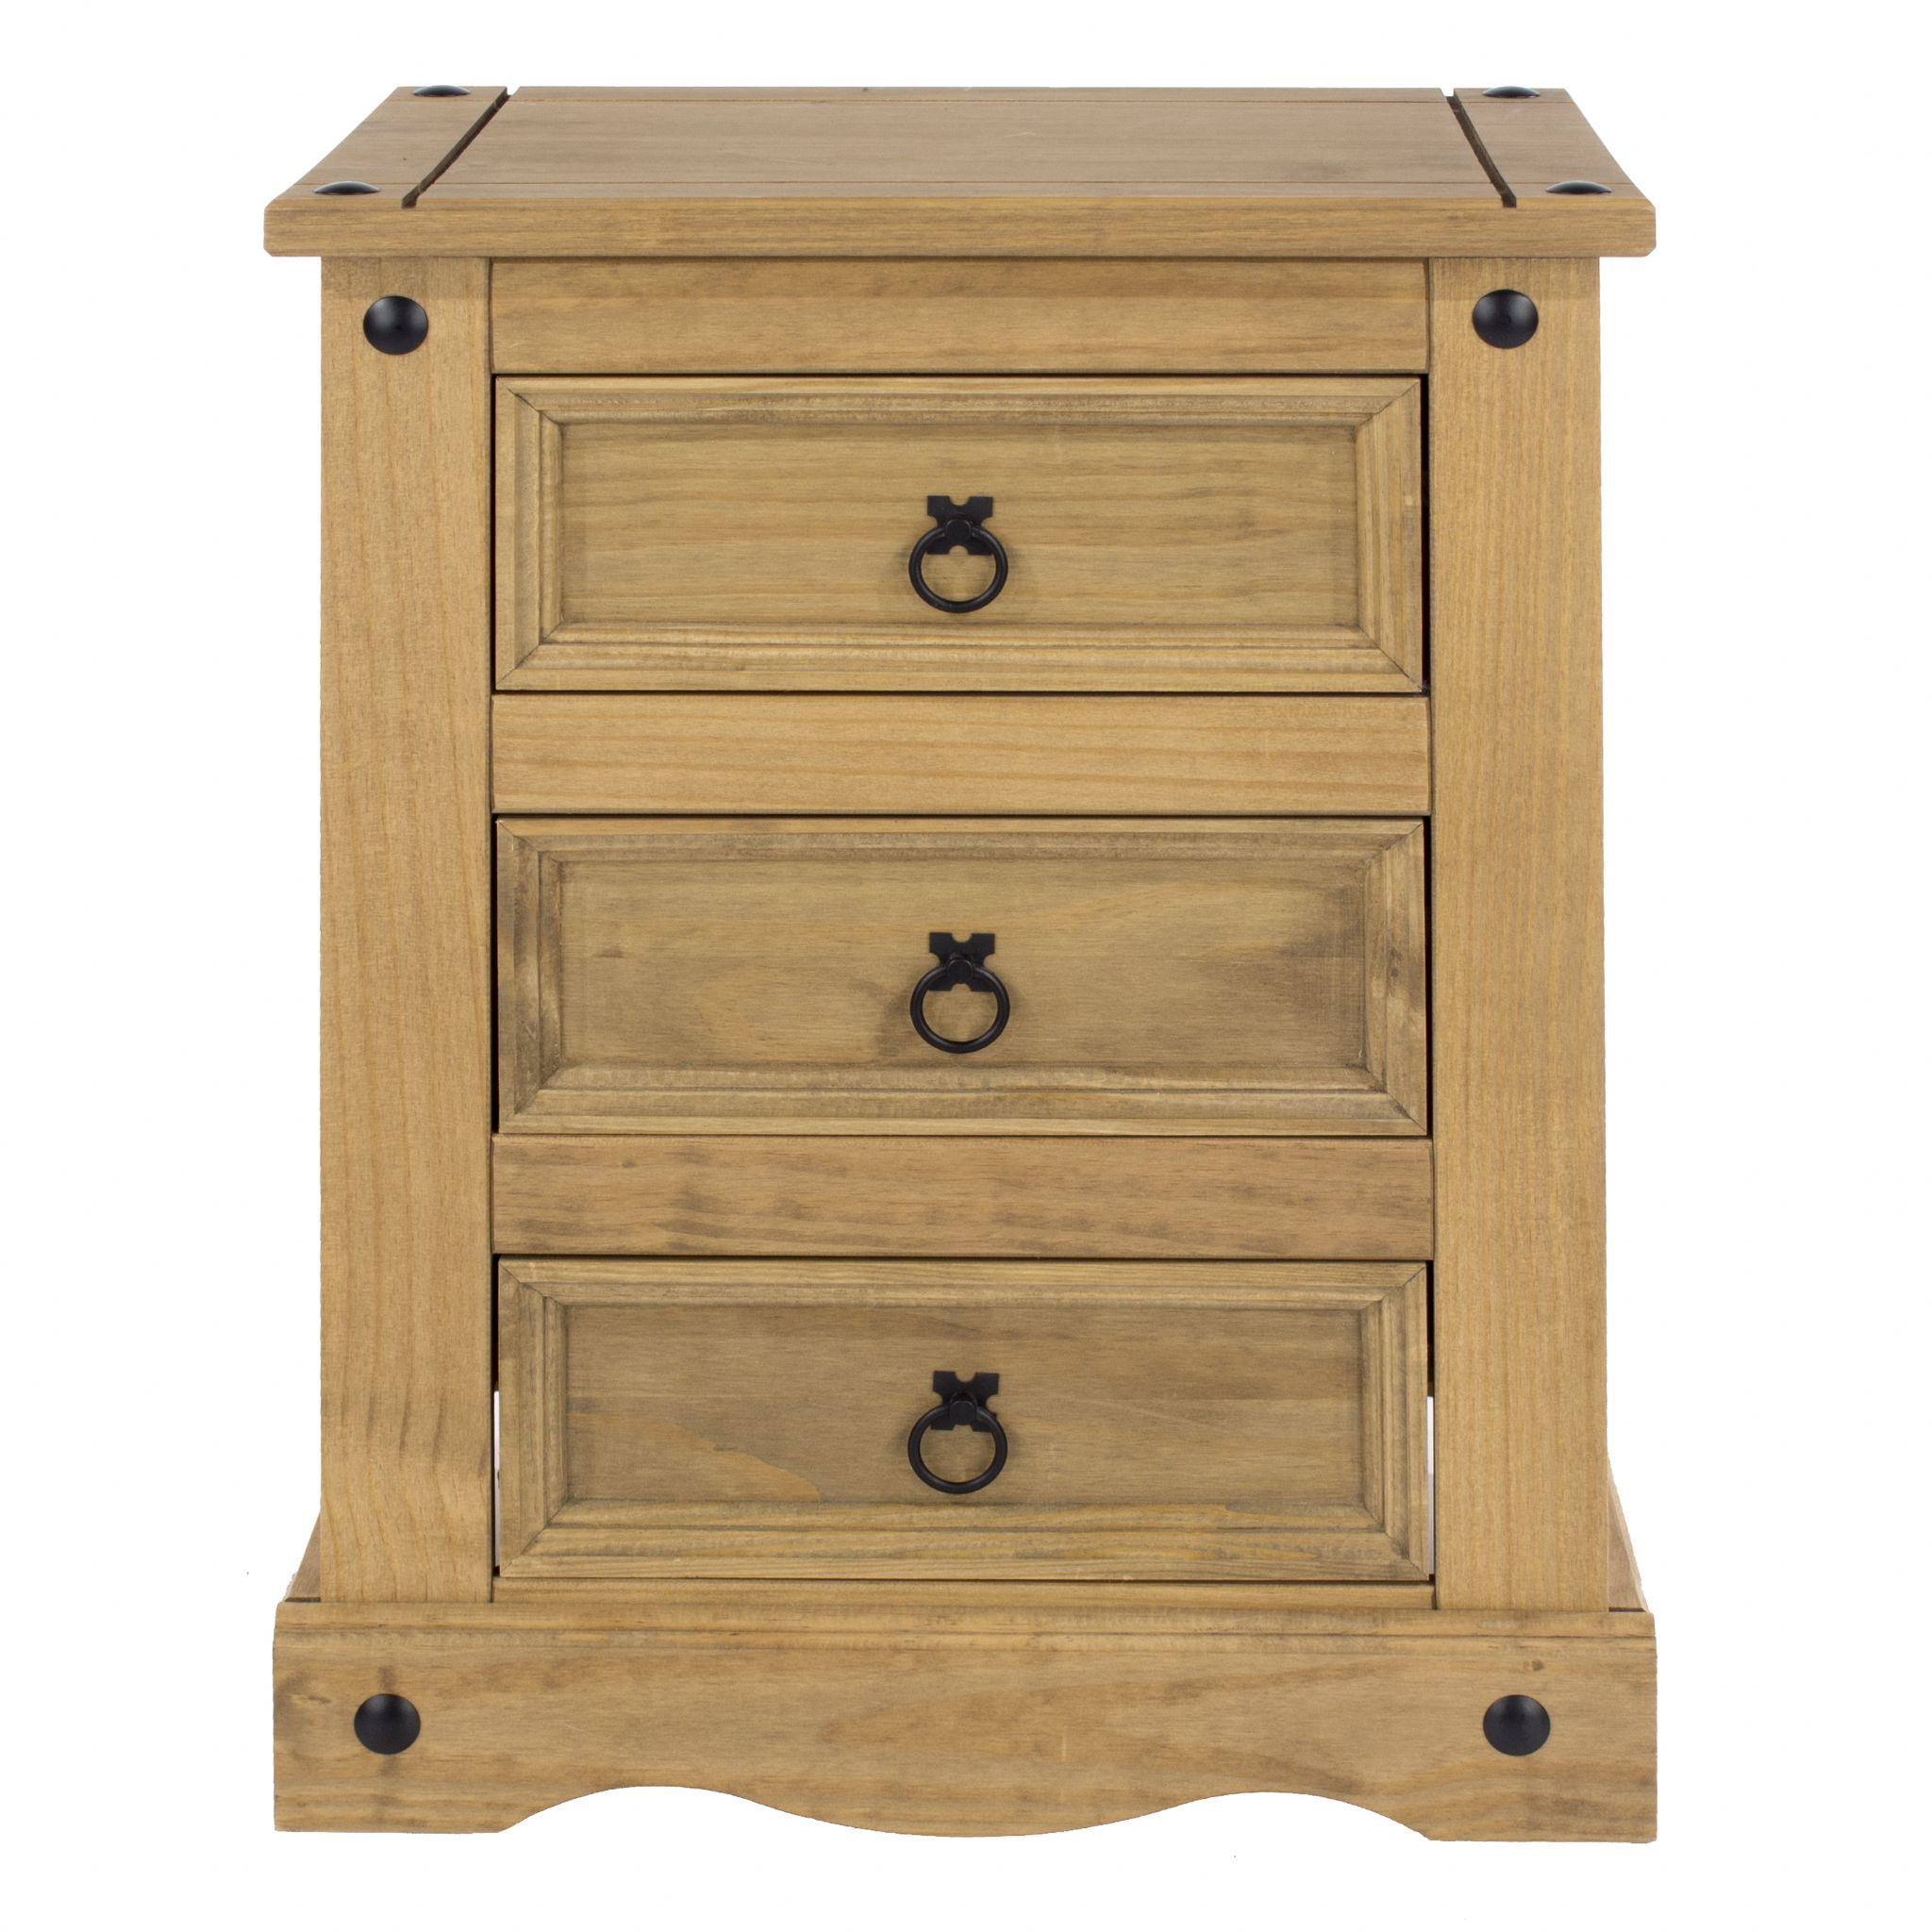 Premium Corona 3 Drawer Bedside Solid Pine Bedside Table With Three Drawers